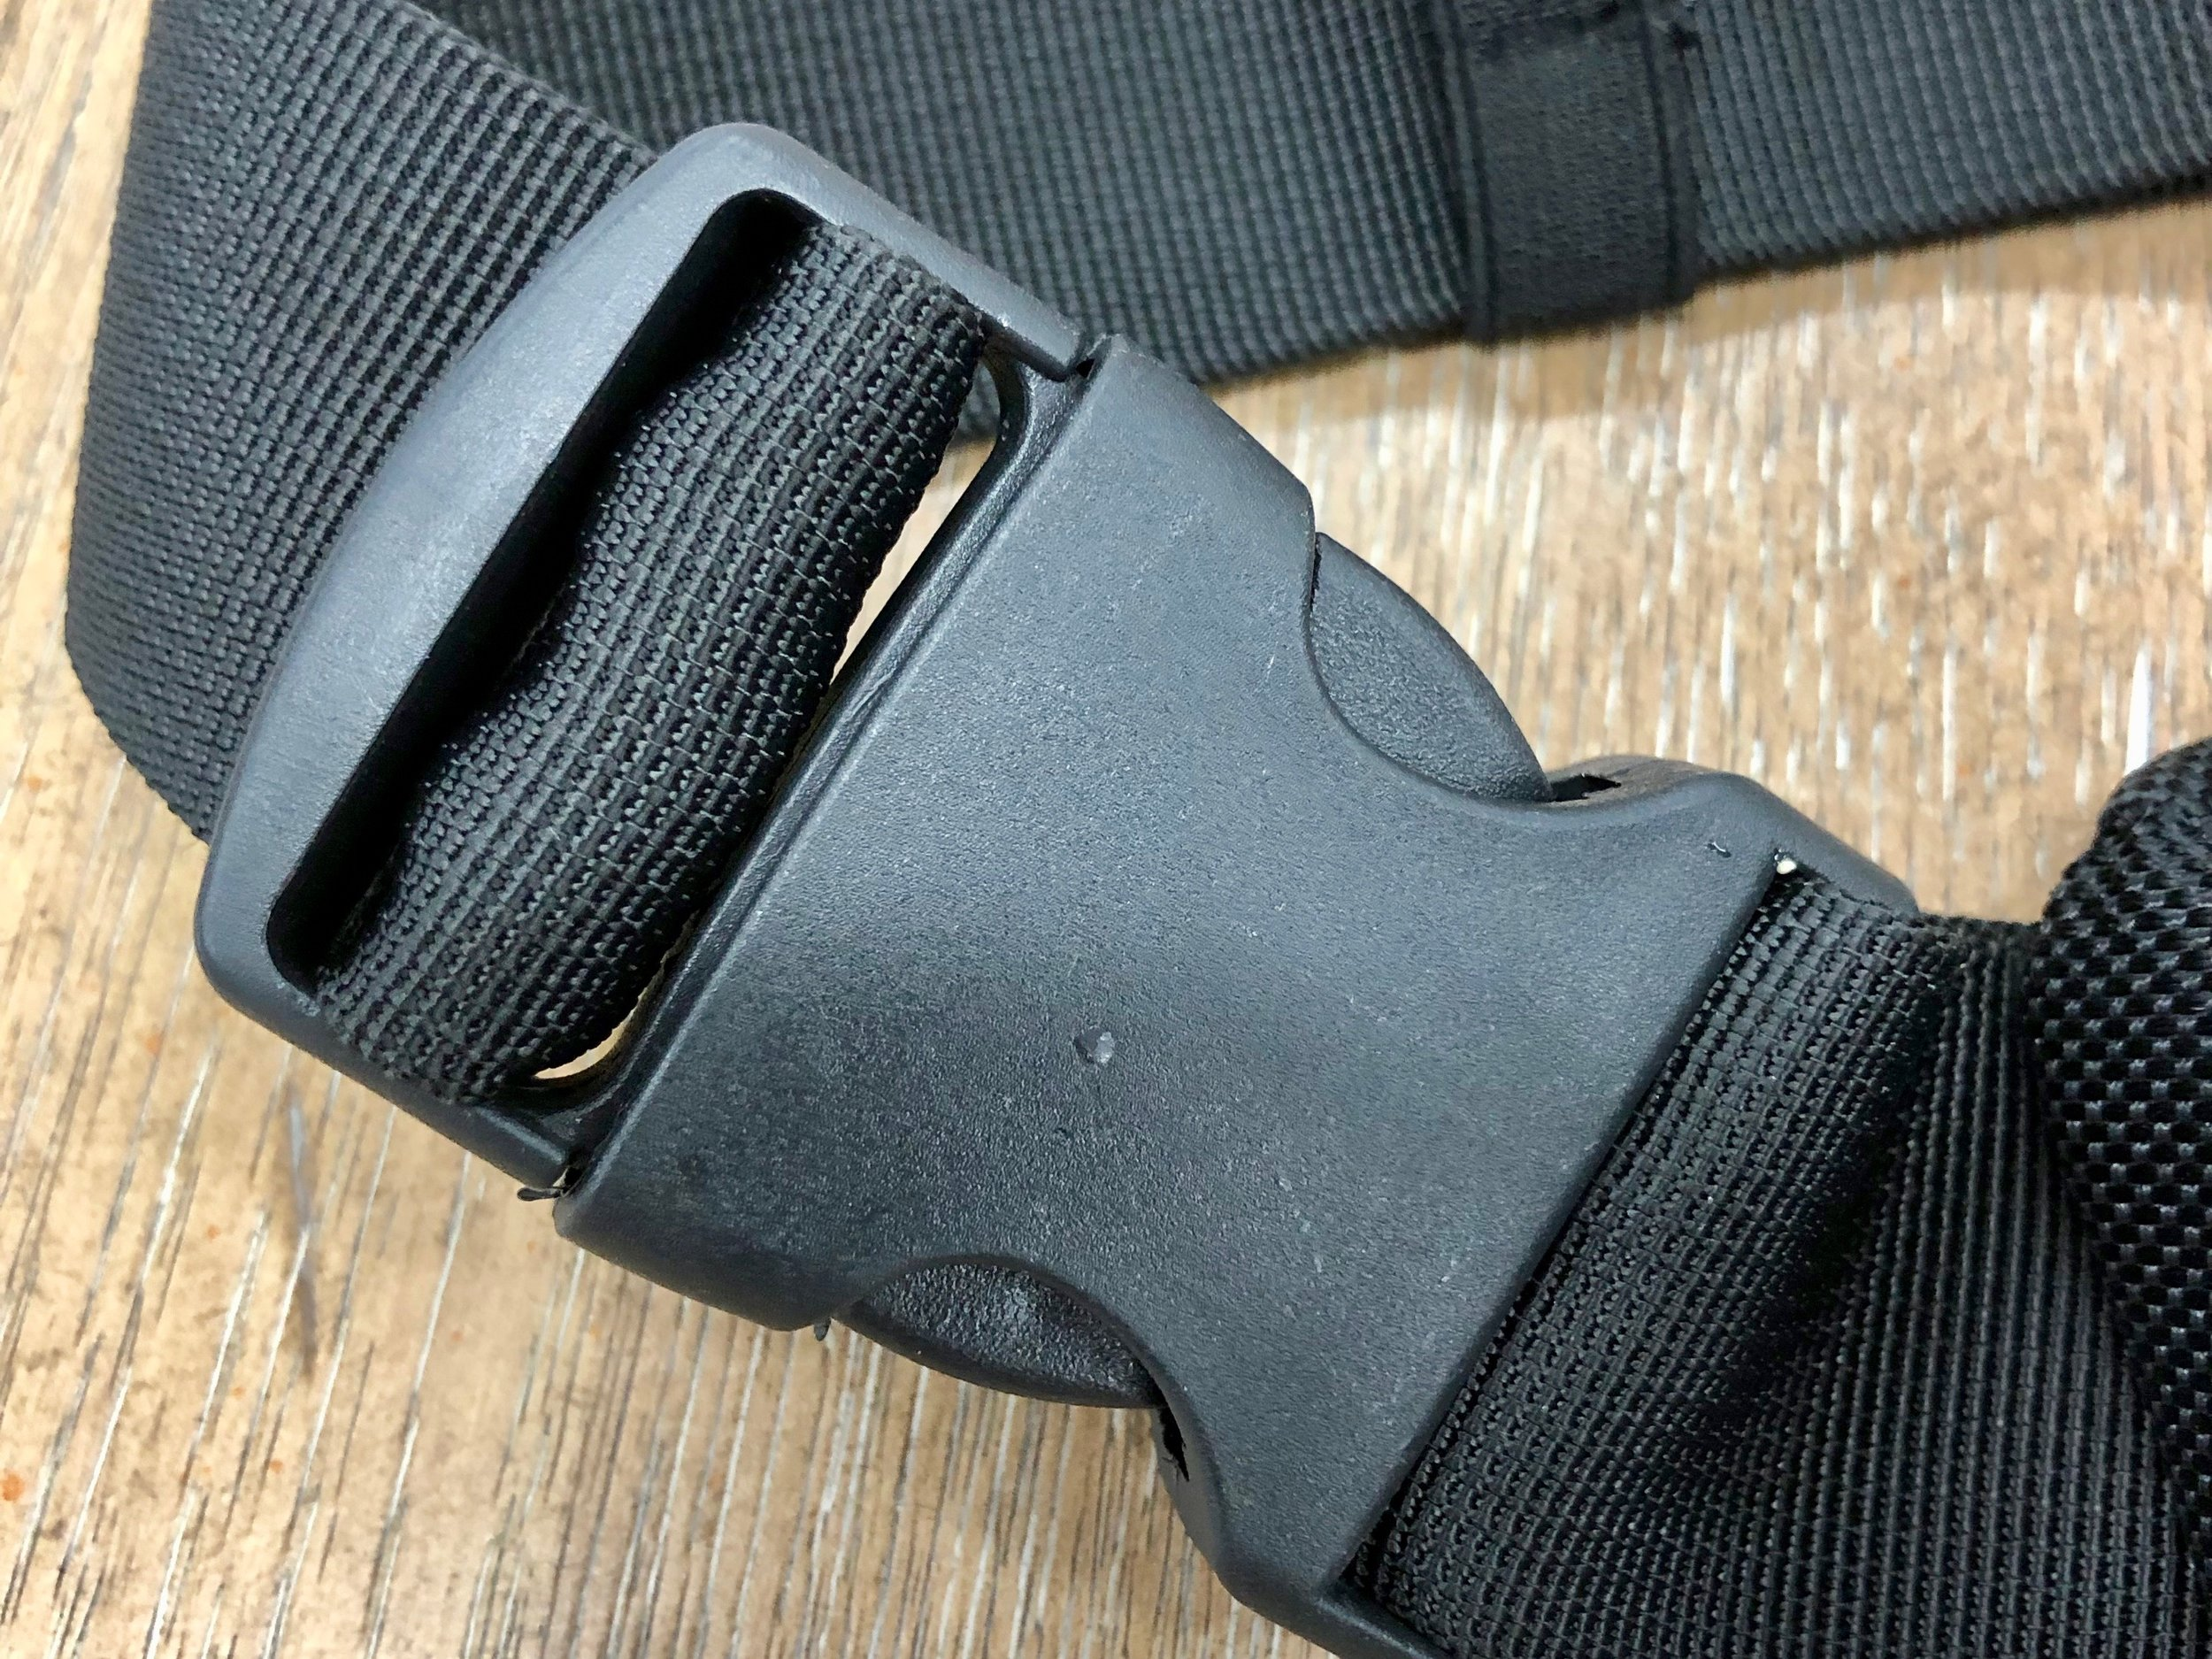 Note the high quality buckle for easy on, easy off. The strap is also high quality webbing, similar to what you'd find on a seatbelt. And it adjusts from very very small, to plenty big.